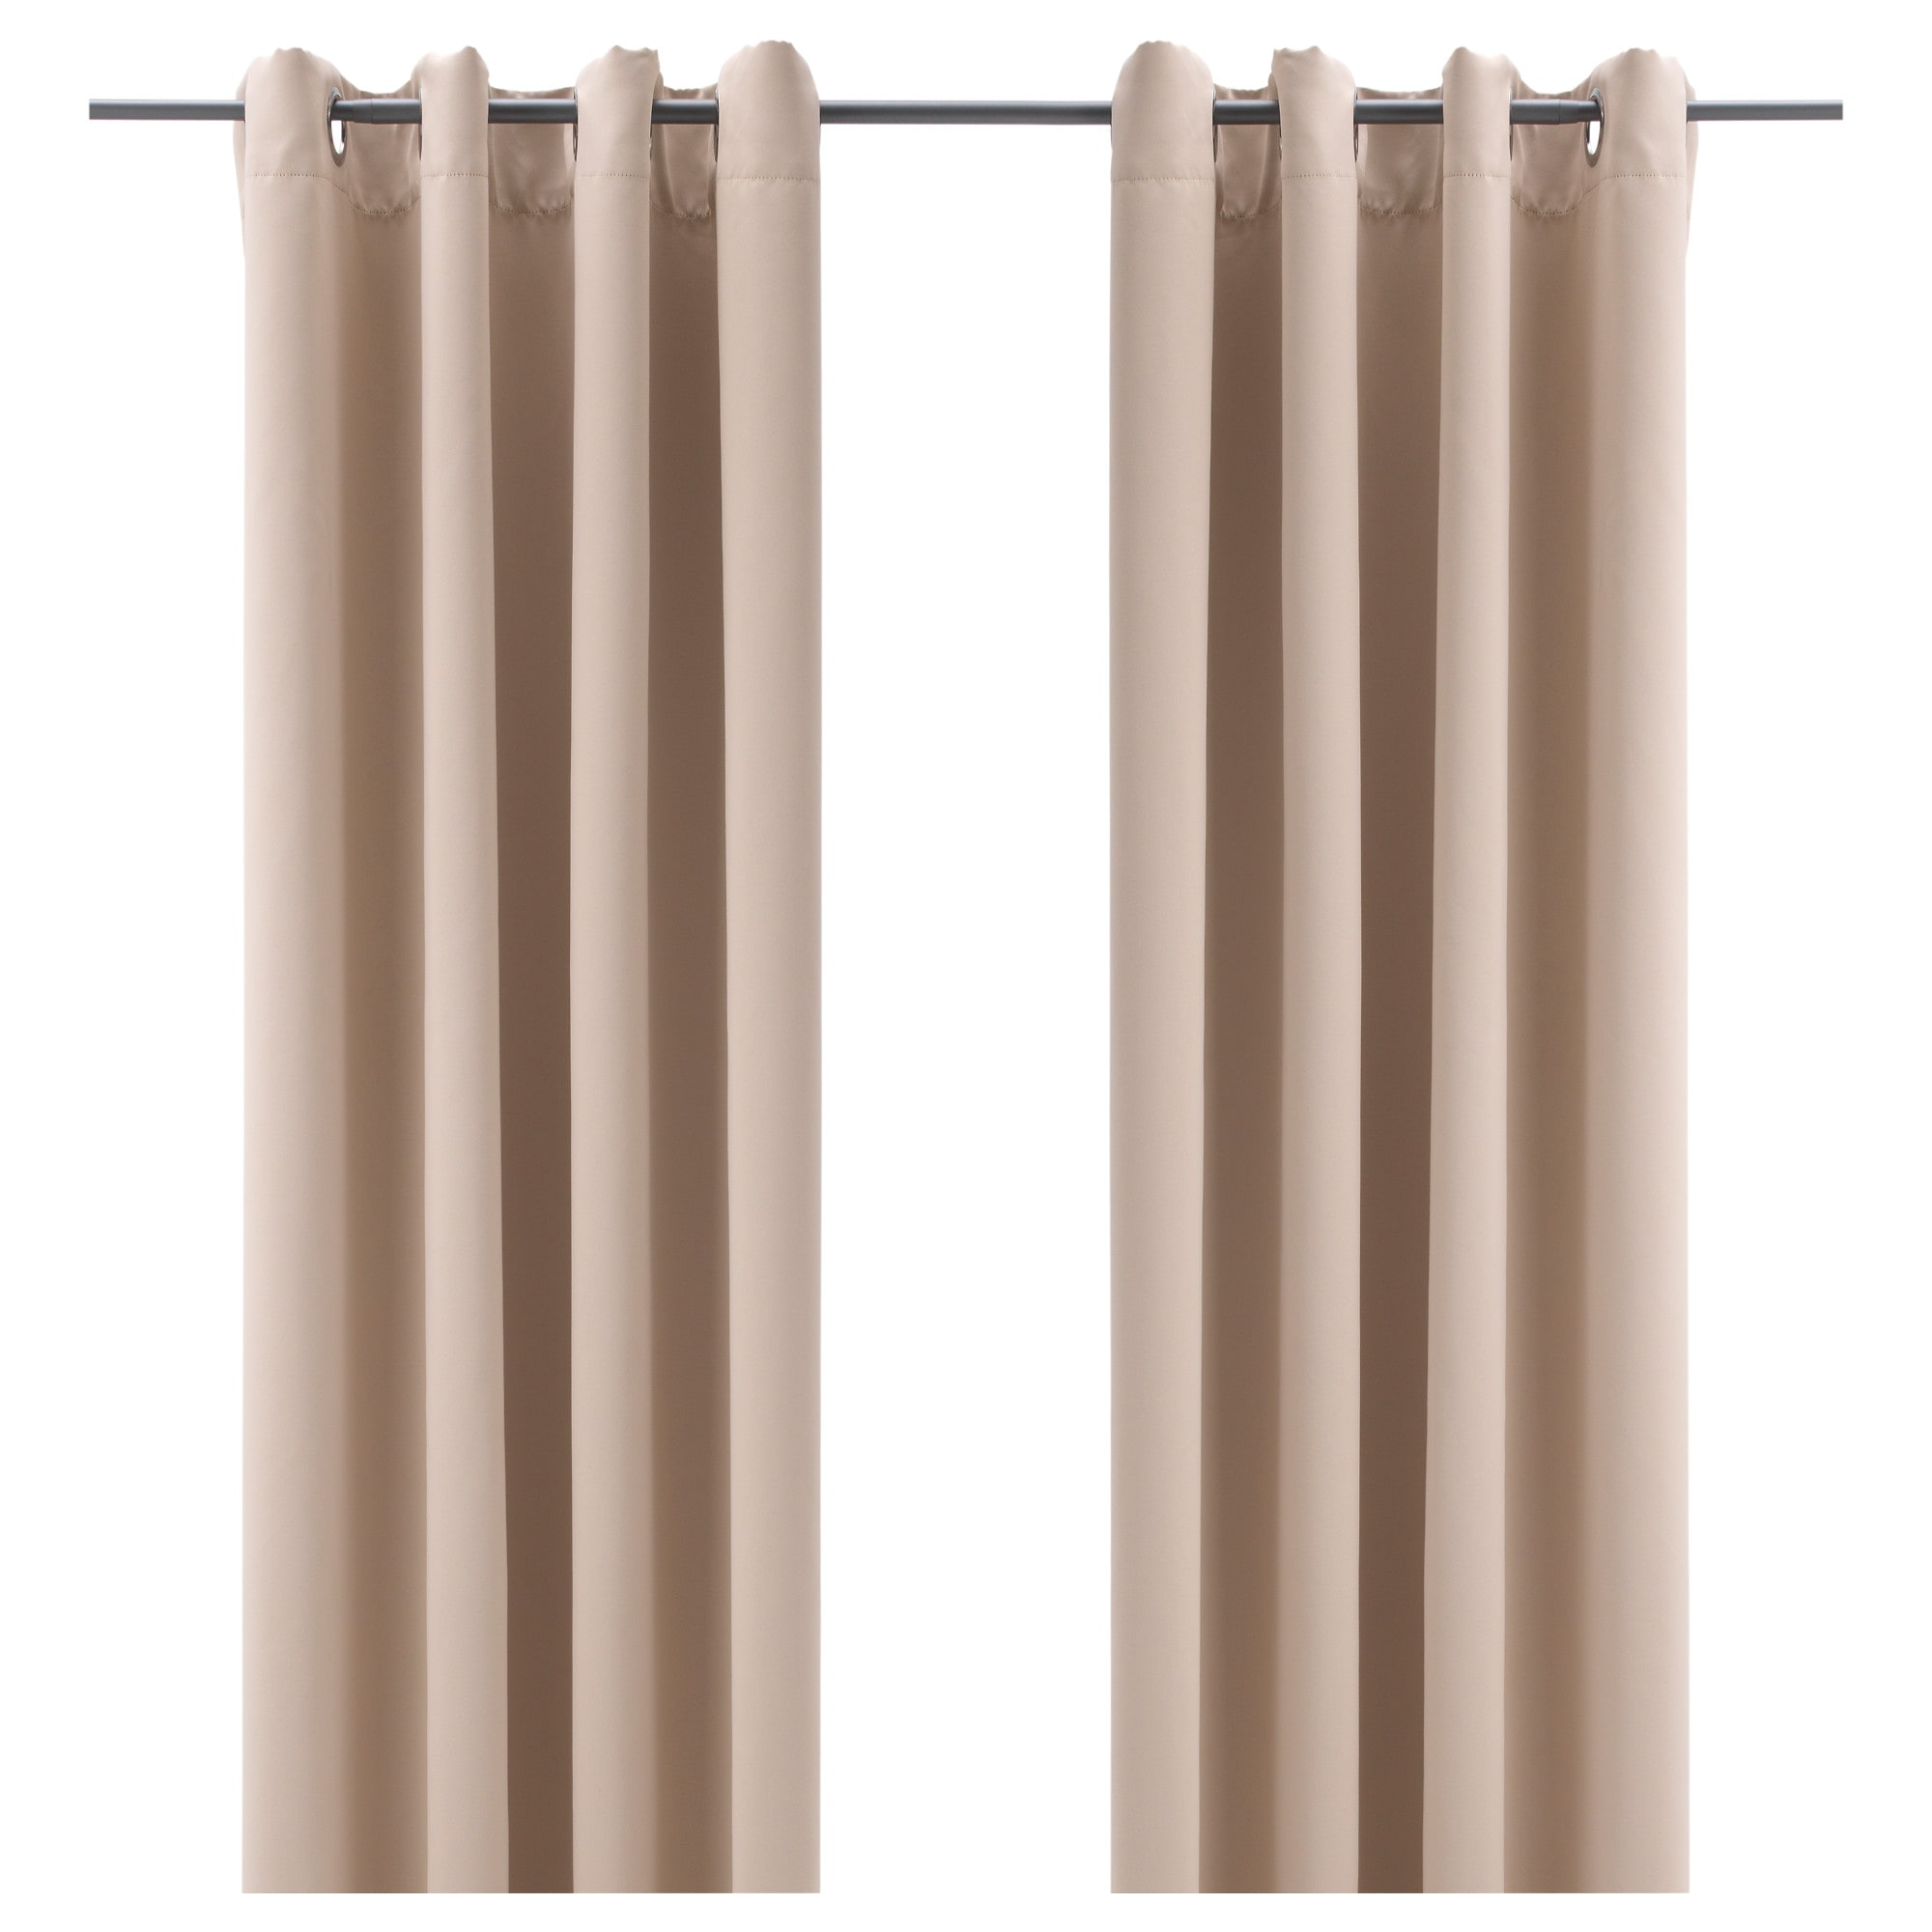 Navy curtains blackout - Bollolvon Blackout Curtains 1 Pair Beige Length 98 Width 57